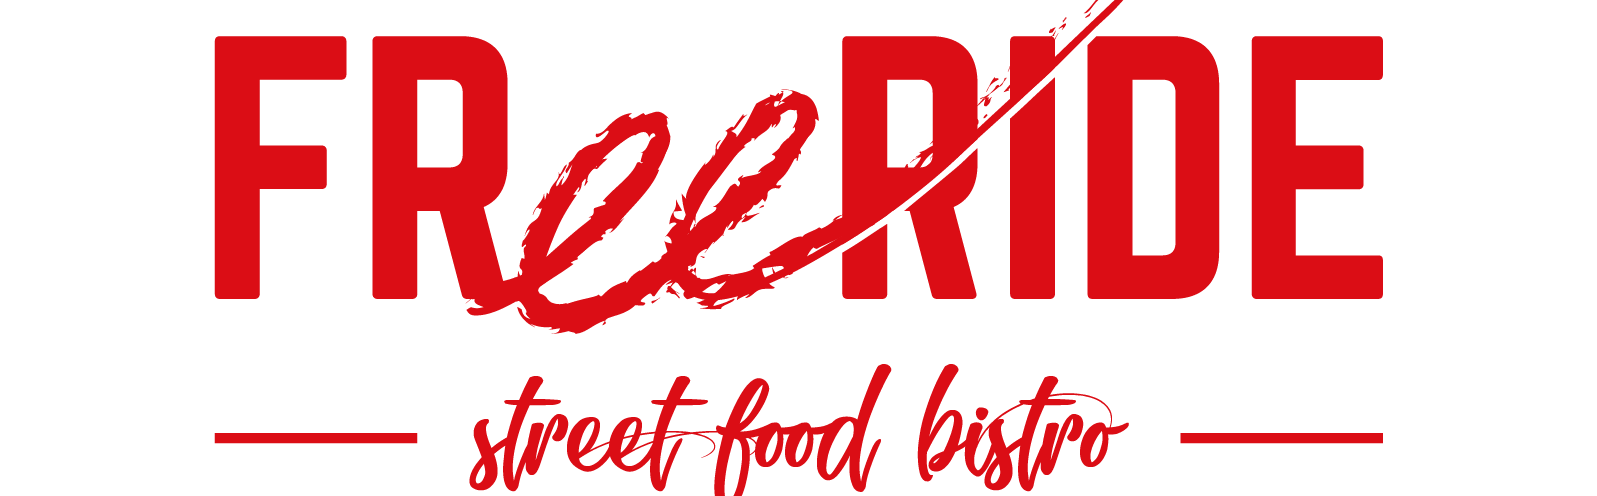 Freeride Streetfood Bistro